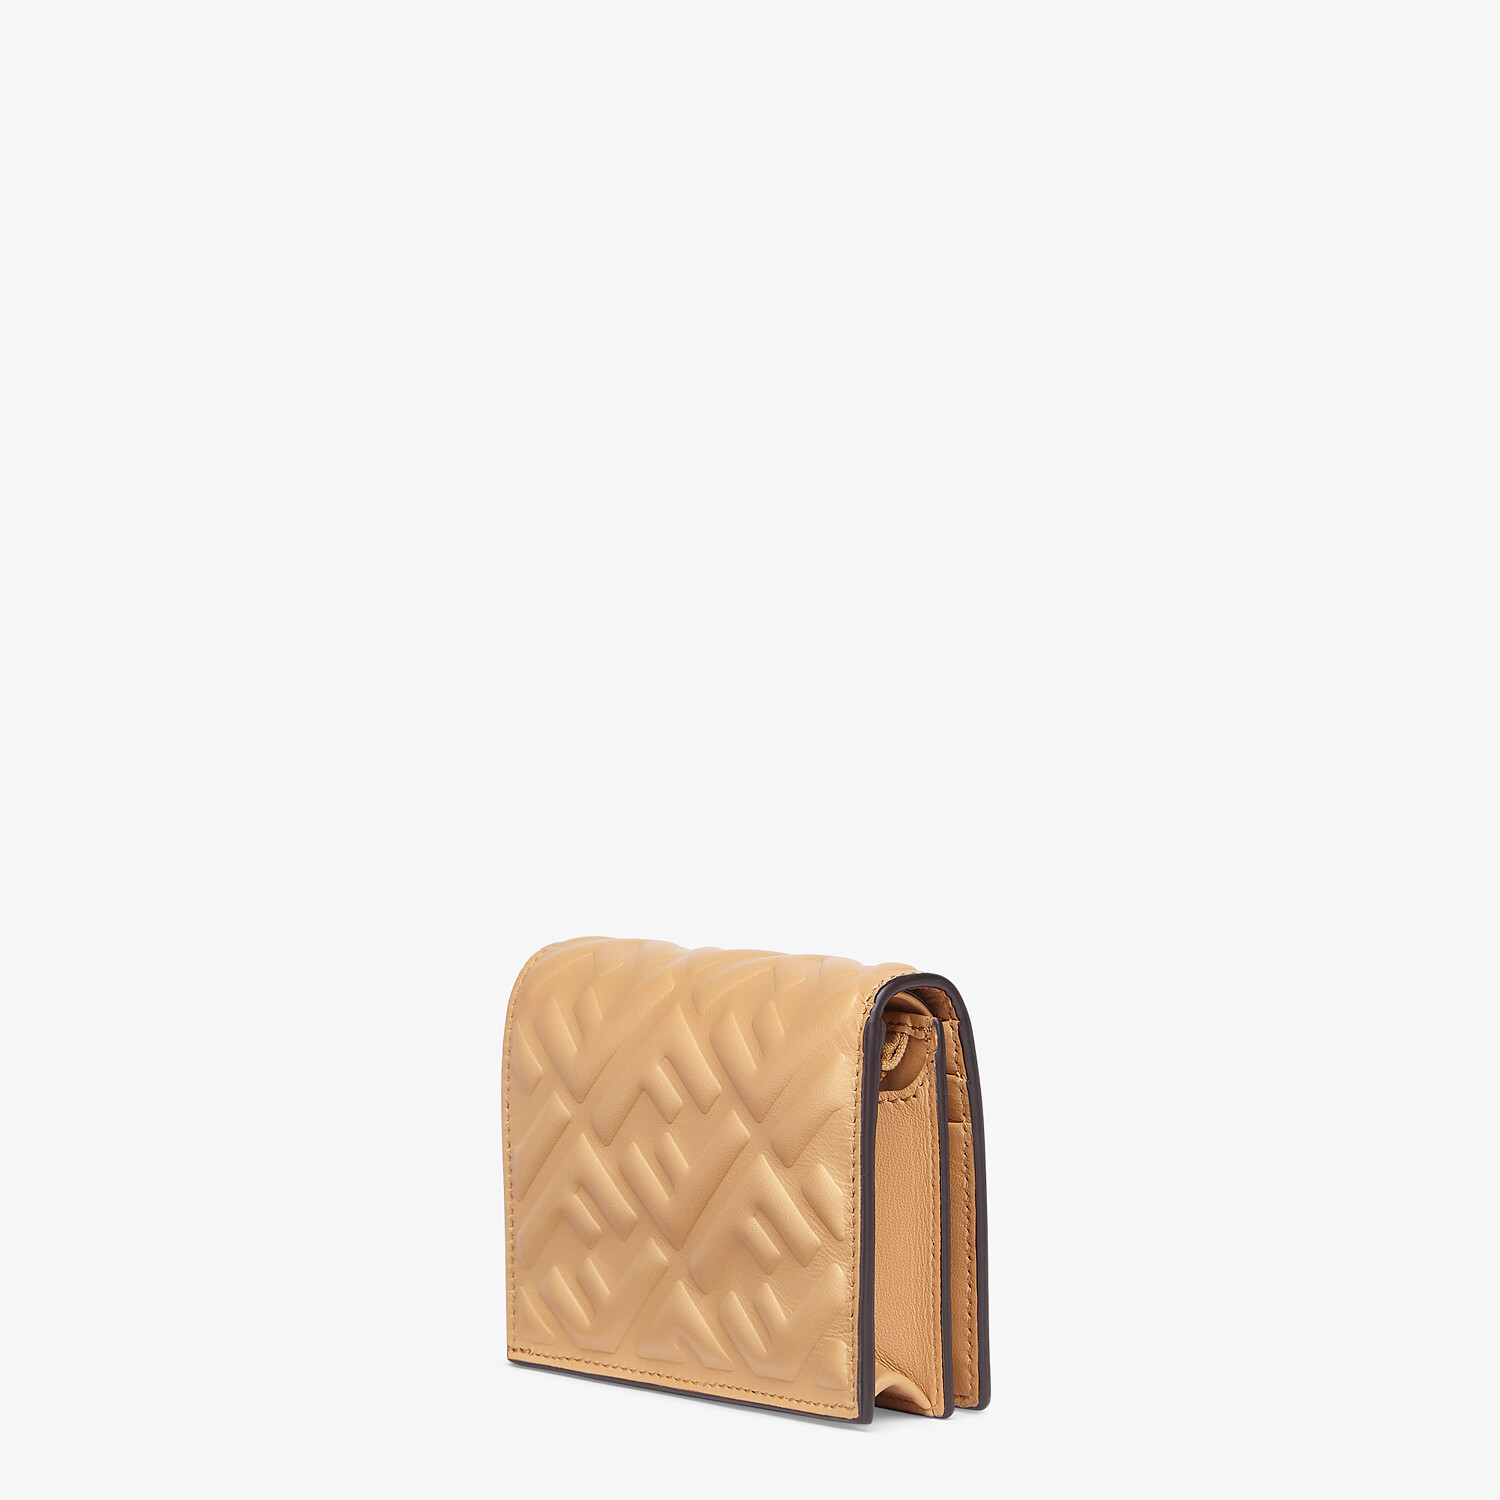 FENDI SMALL WALLET - Beige nappa leather wallet - view 2 detail